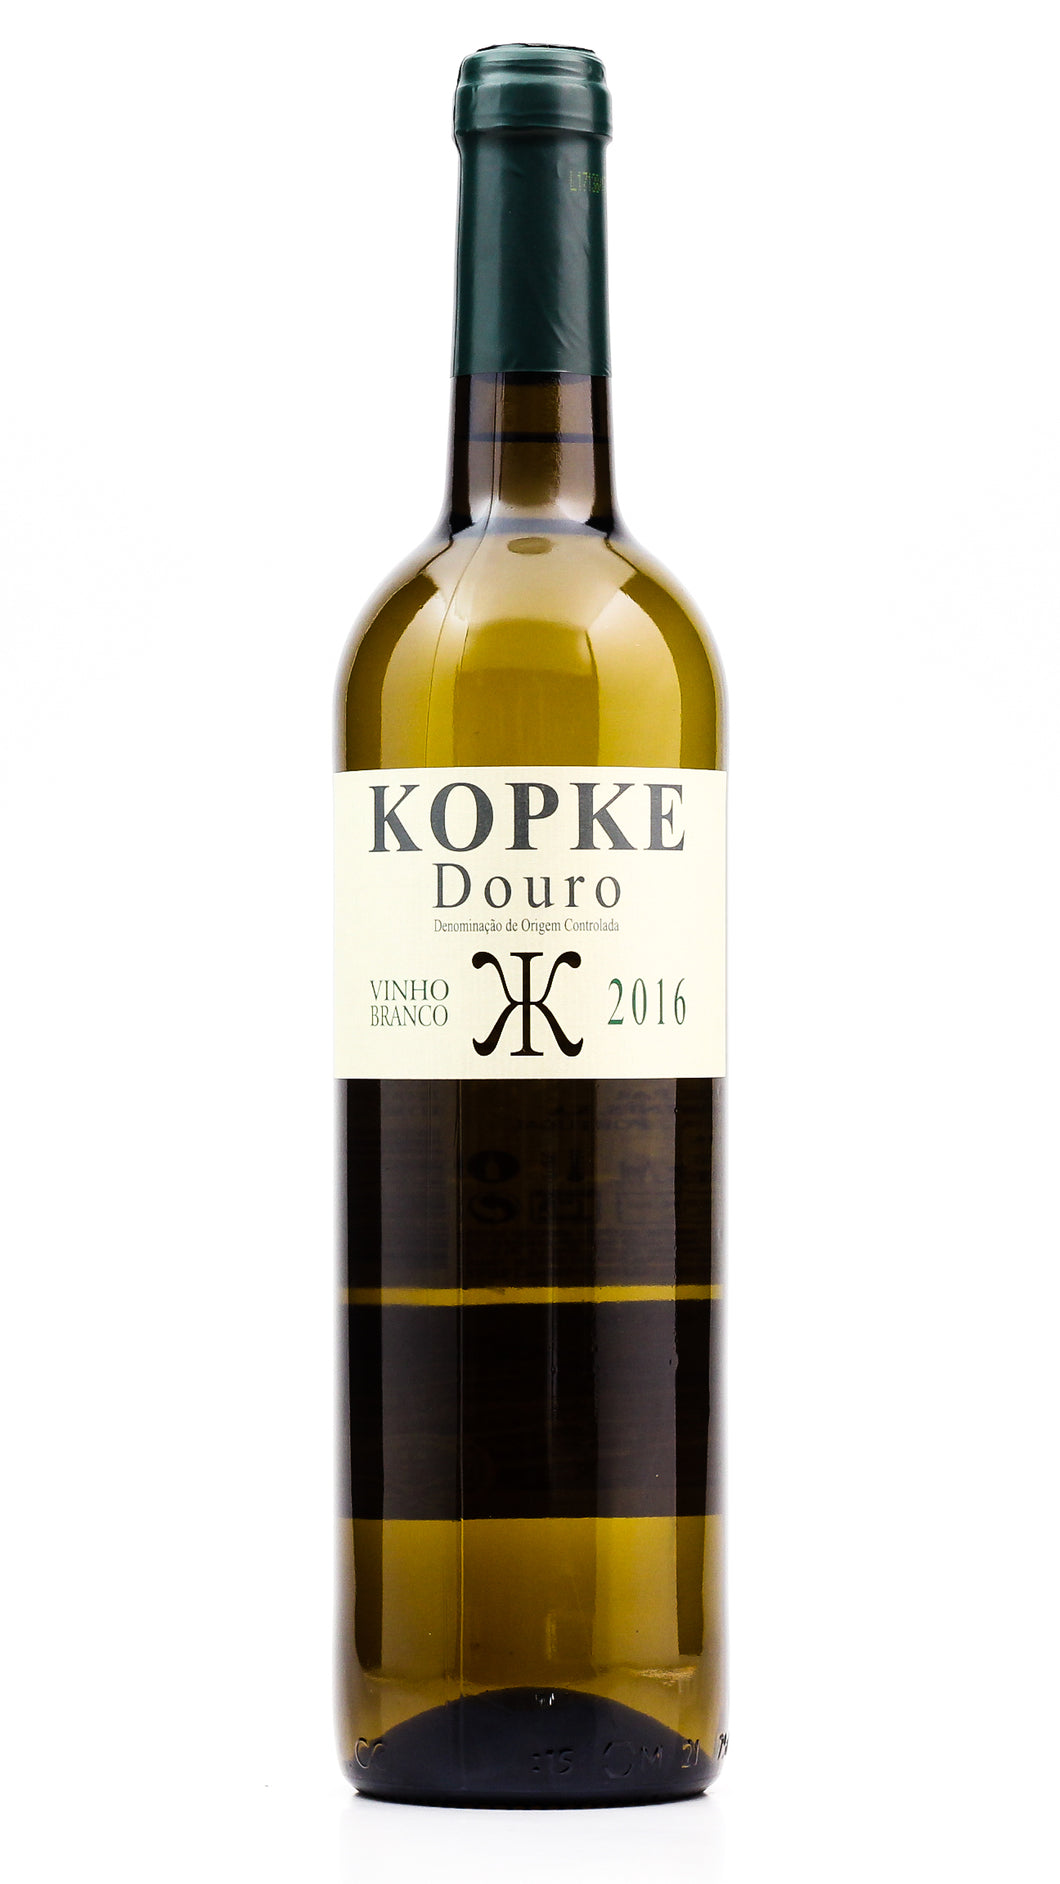 KOPKE DOURO WHITE WINE